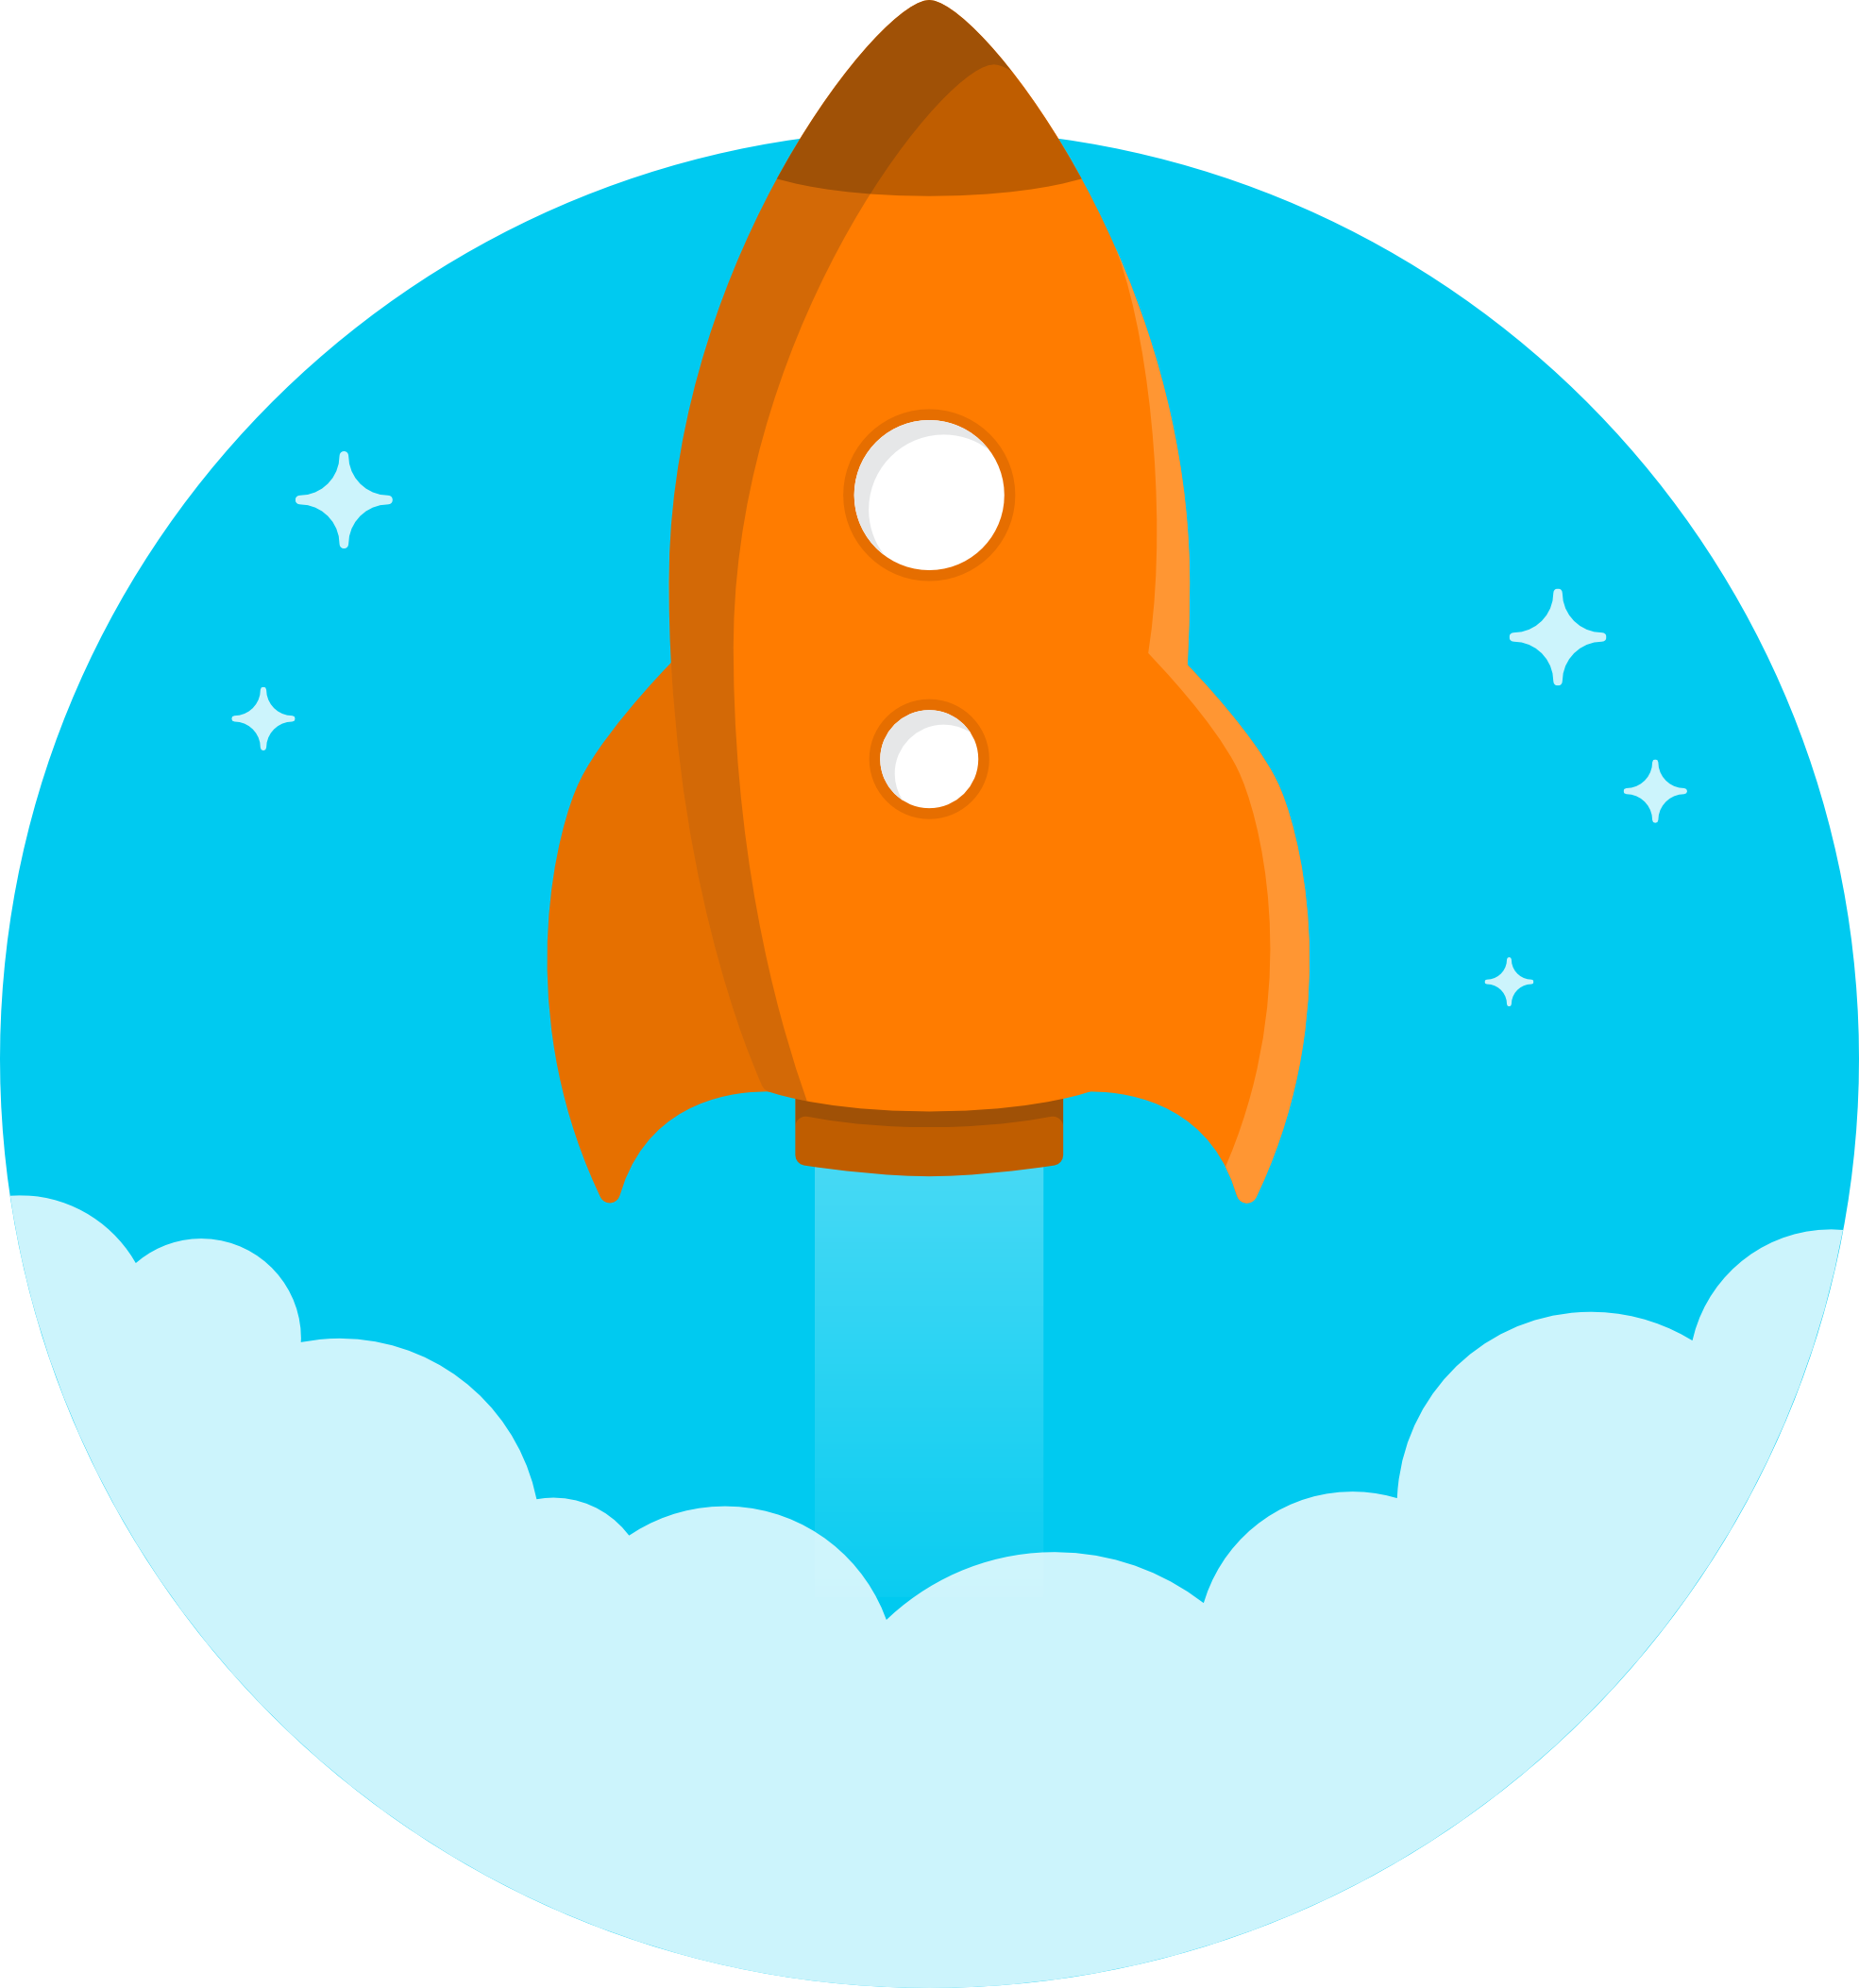 Blue and red black. Clipart rocket gambar